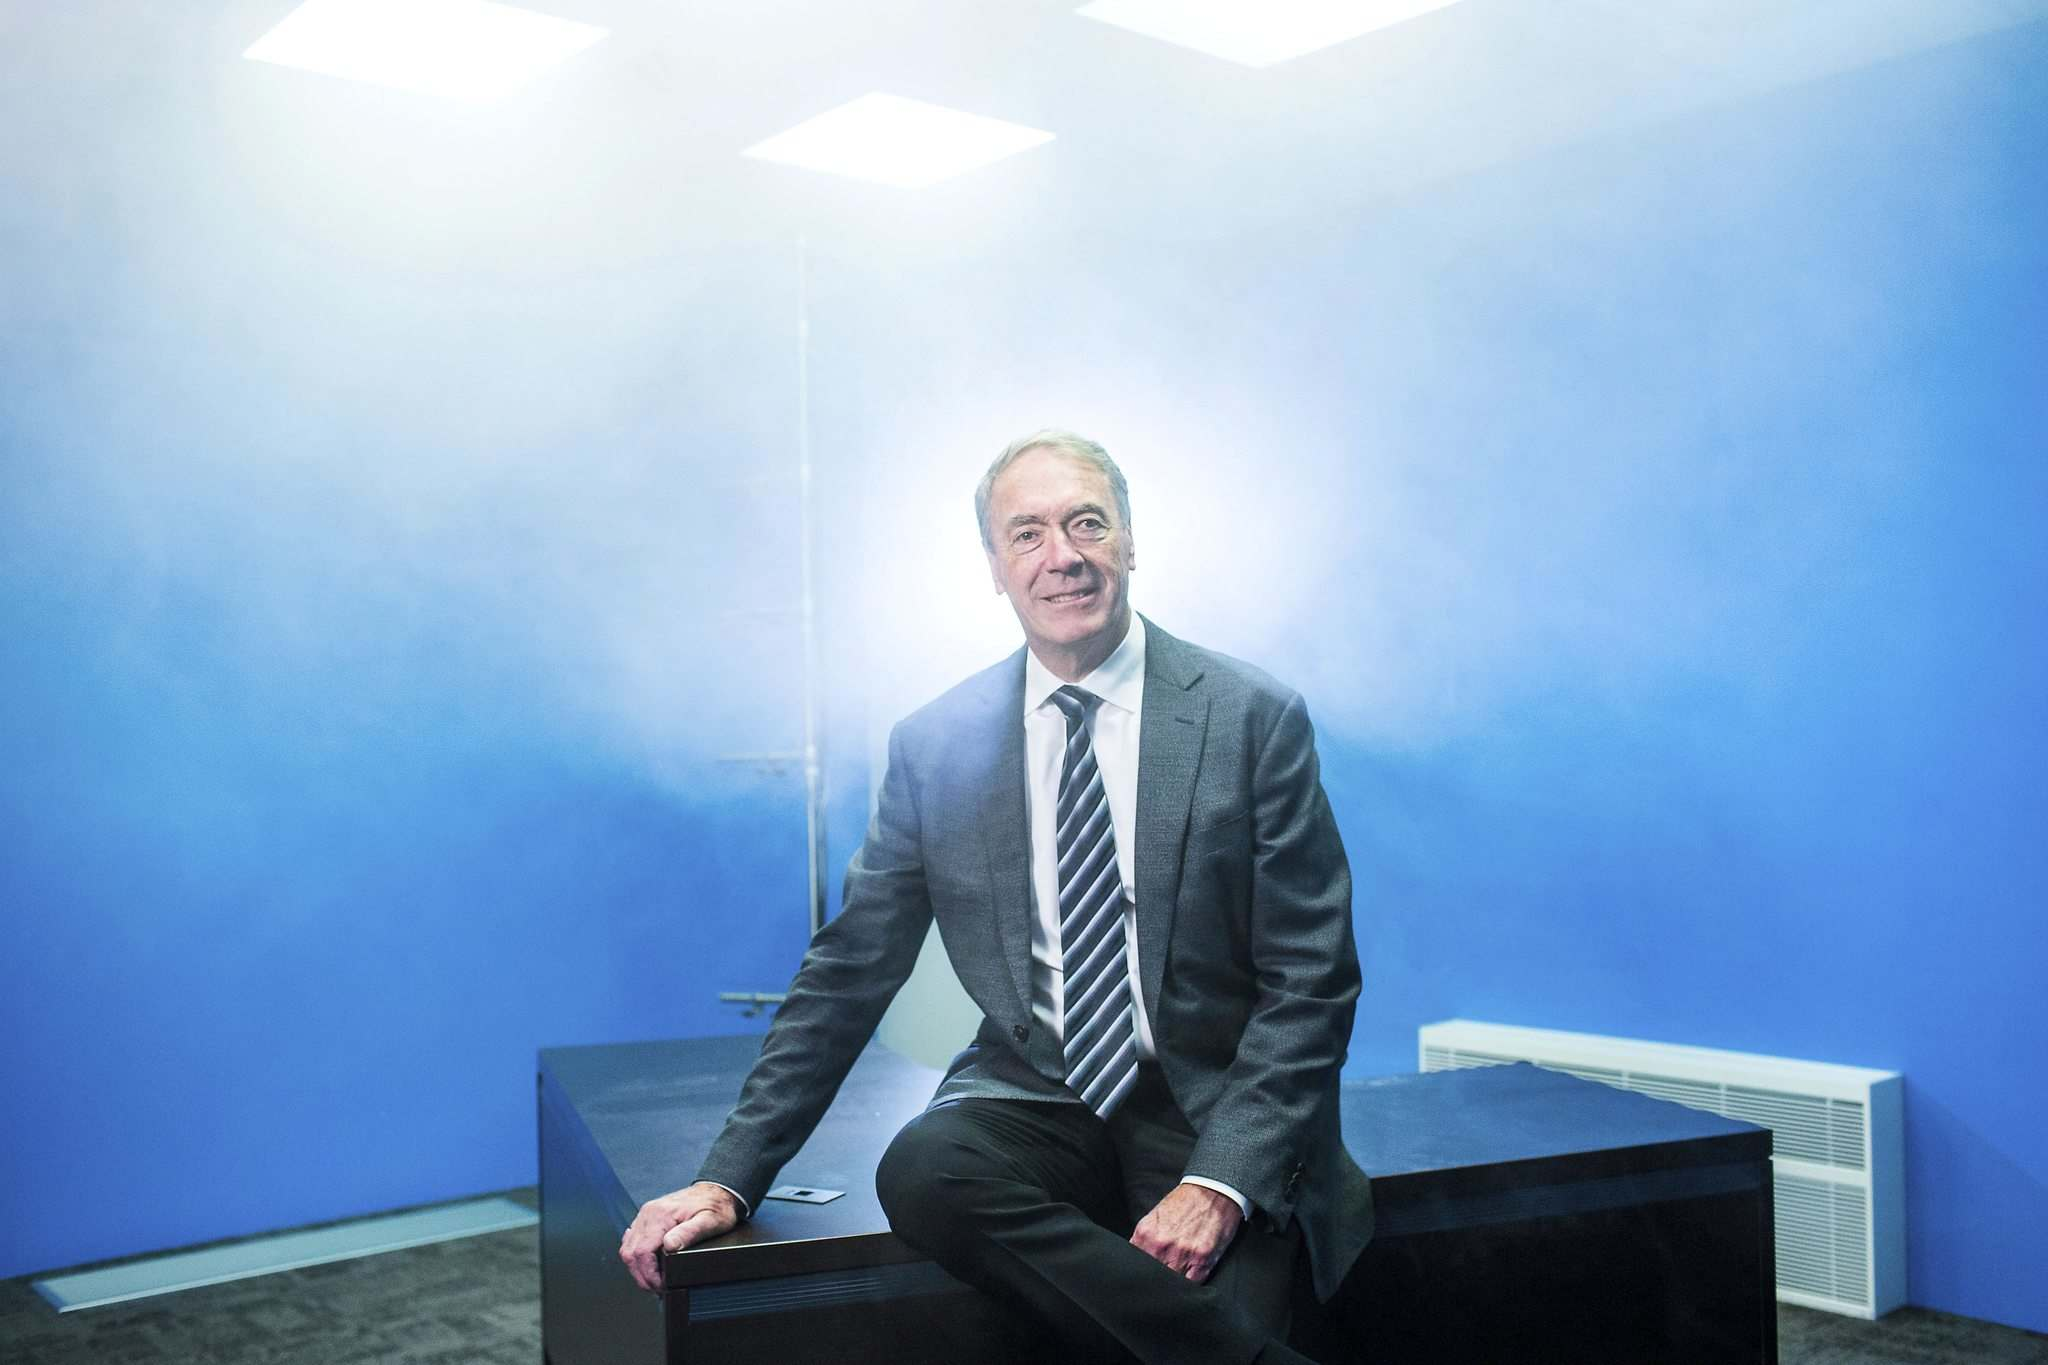 <p>Price Industries owner and CEO Gerry Price is the latest recipient of the prestigious Founders' Award from the Fraser Institute. His business employs around 1,100 people in Winnipeg.</p>